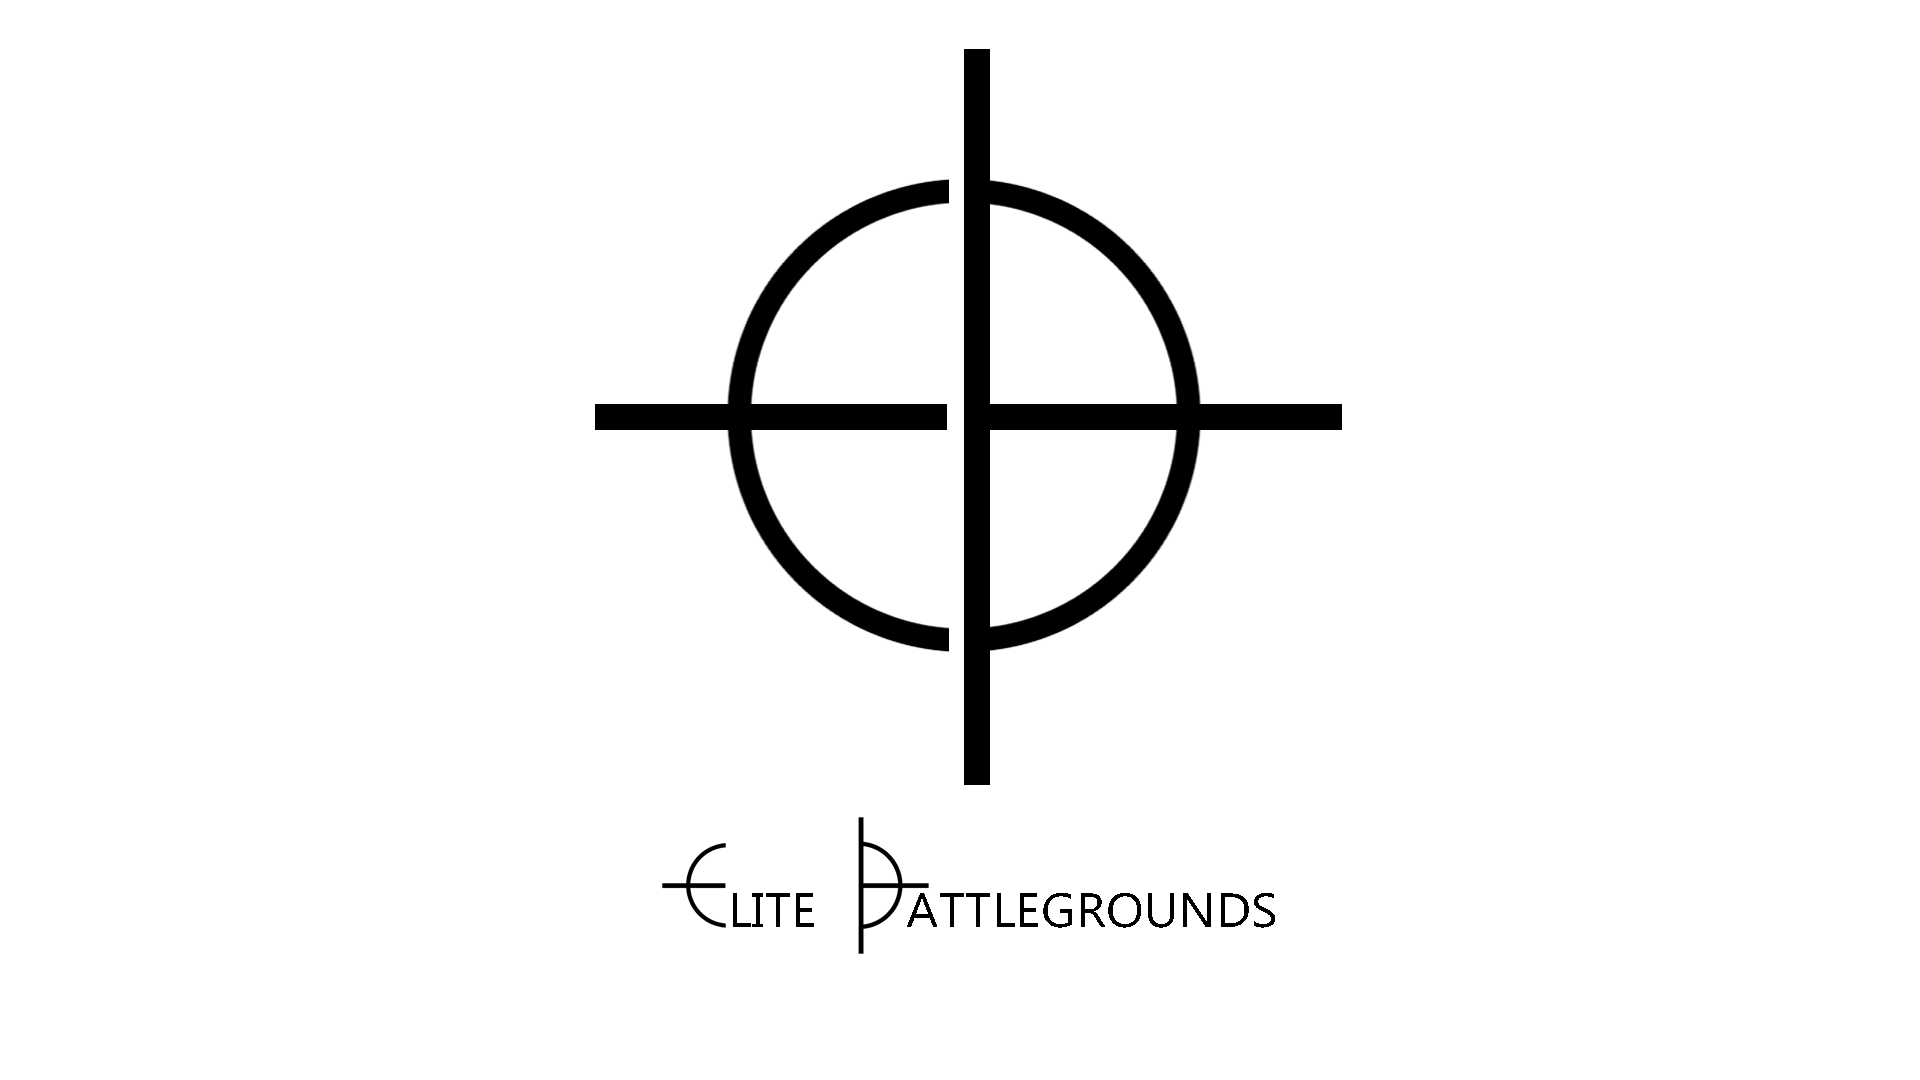 Logo Design by Sam Hedrén - Entry No. 63 in the Logo Design Contest Creative Logo Design for Elite Battlegrounds.